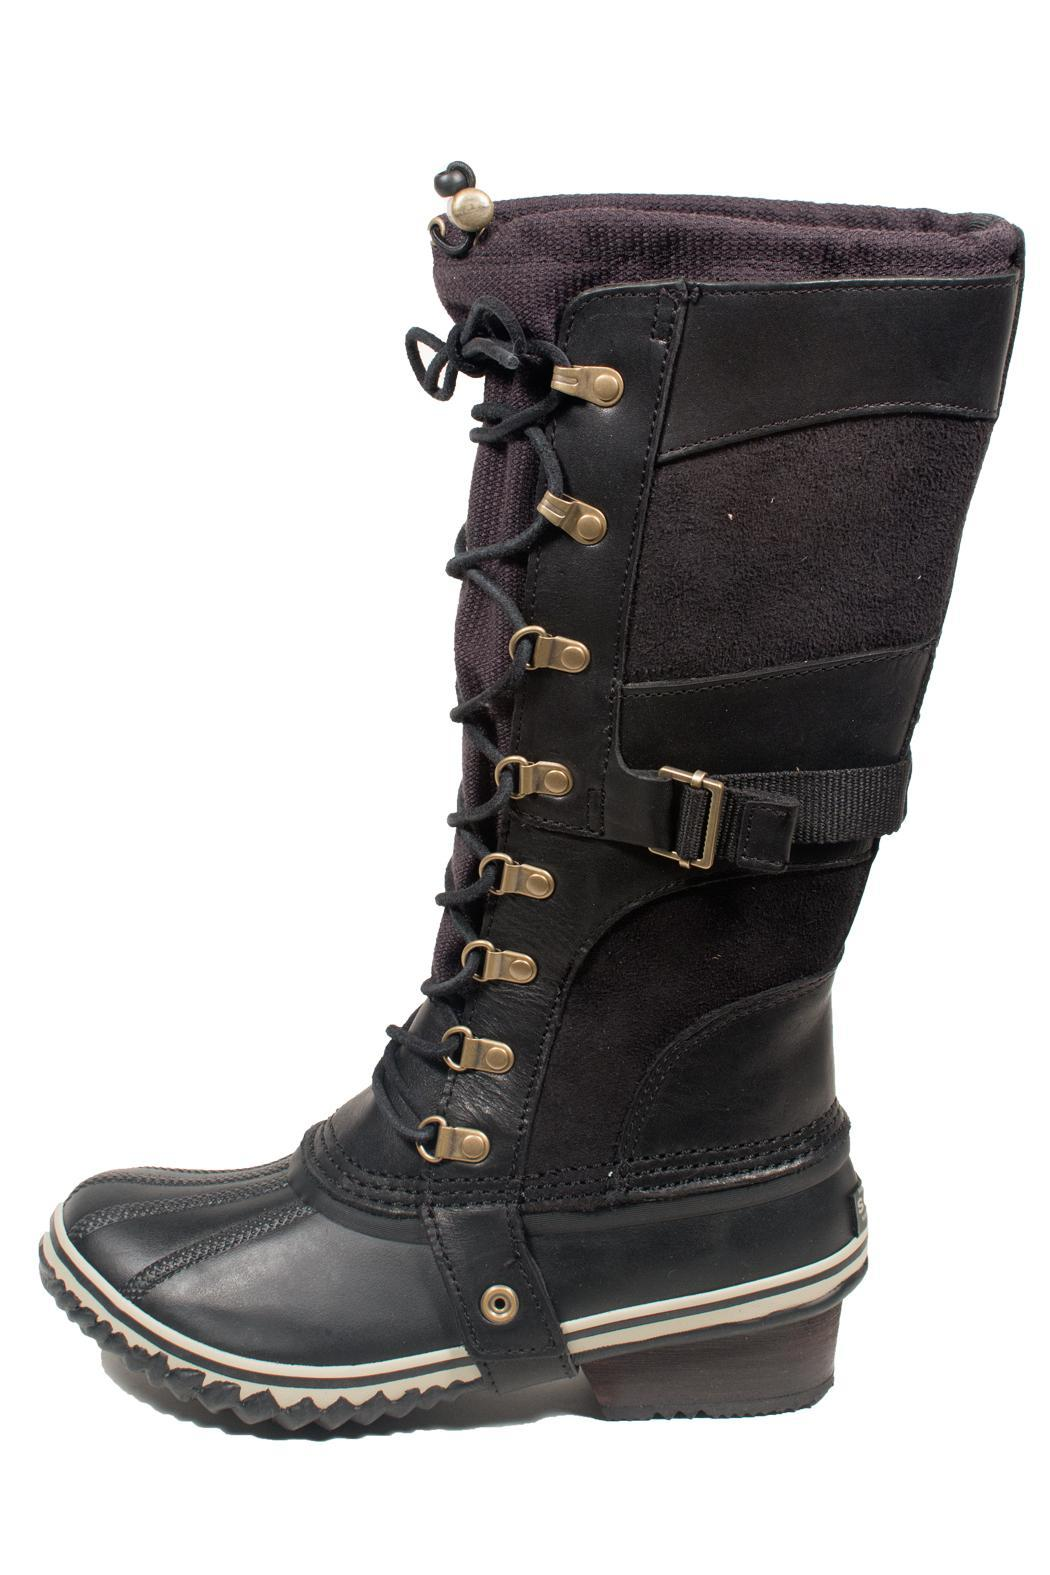 Sorel Casual Winter Boot from Calgary by The Shoe Closet